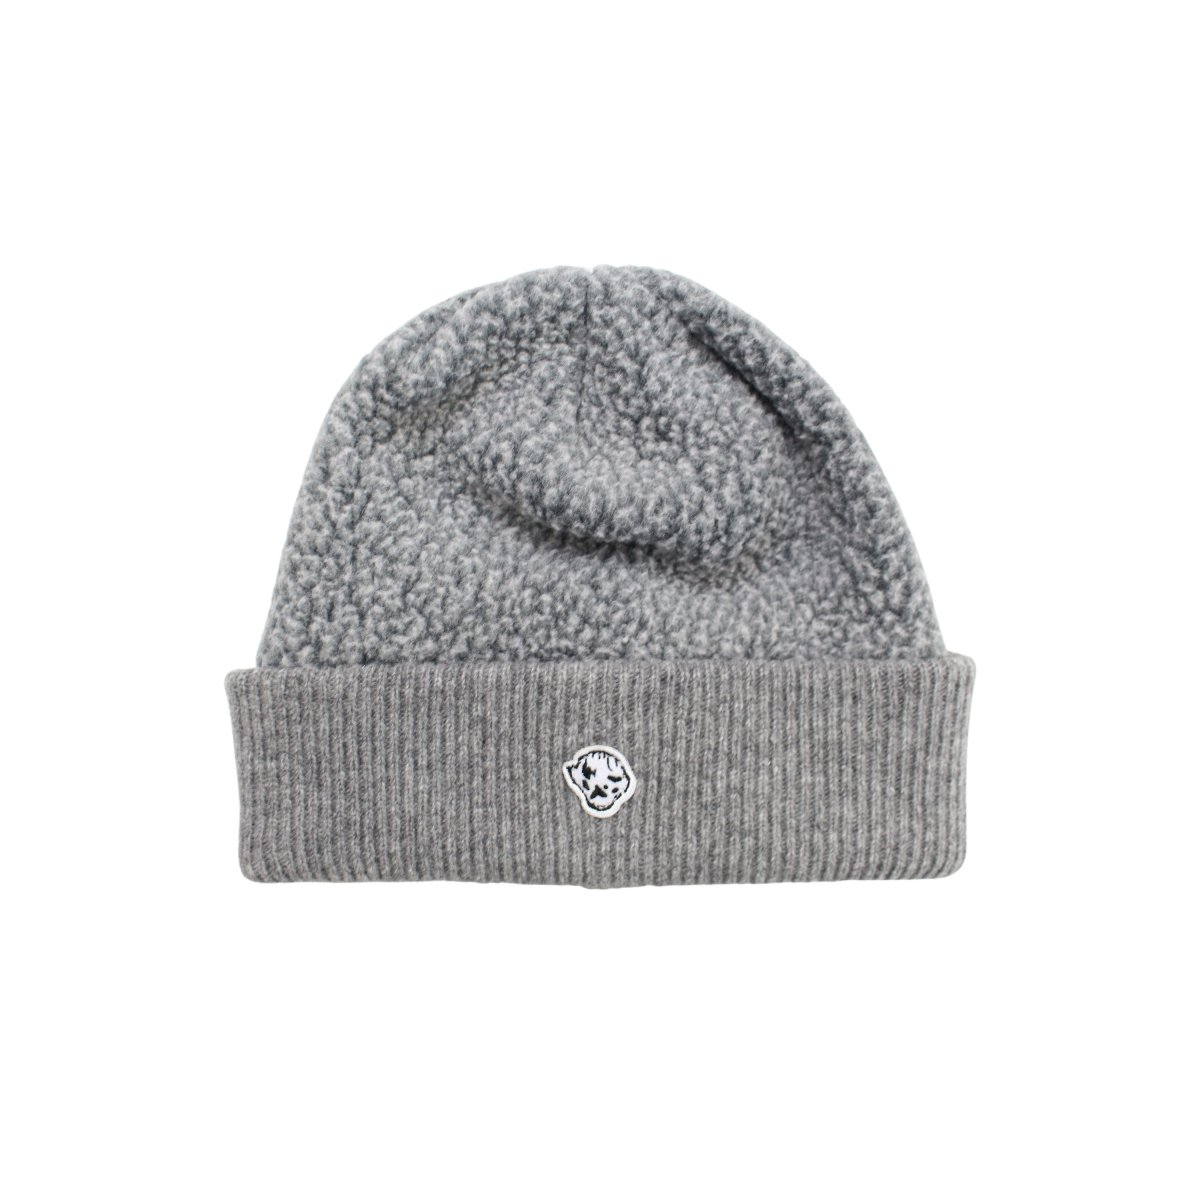 Fleece Knit Beanie